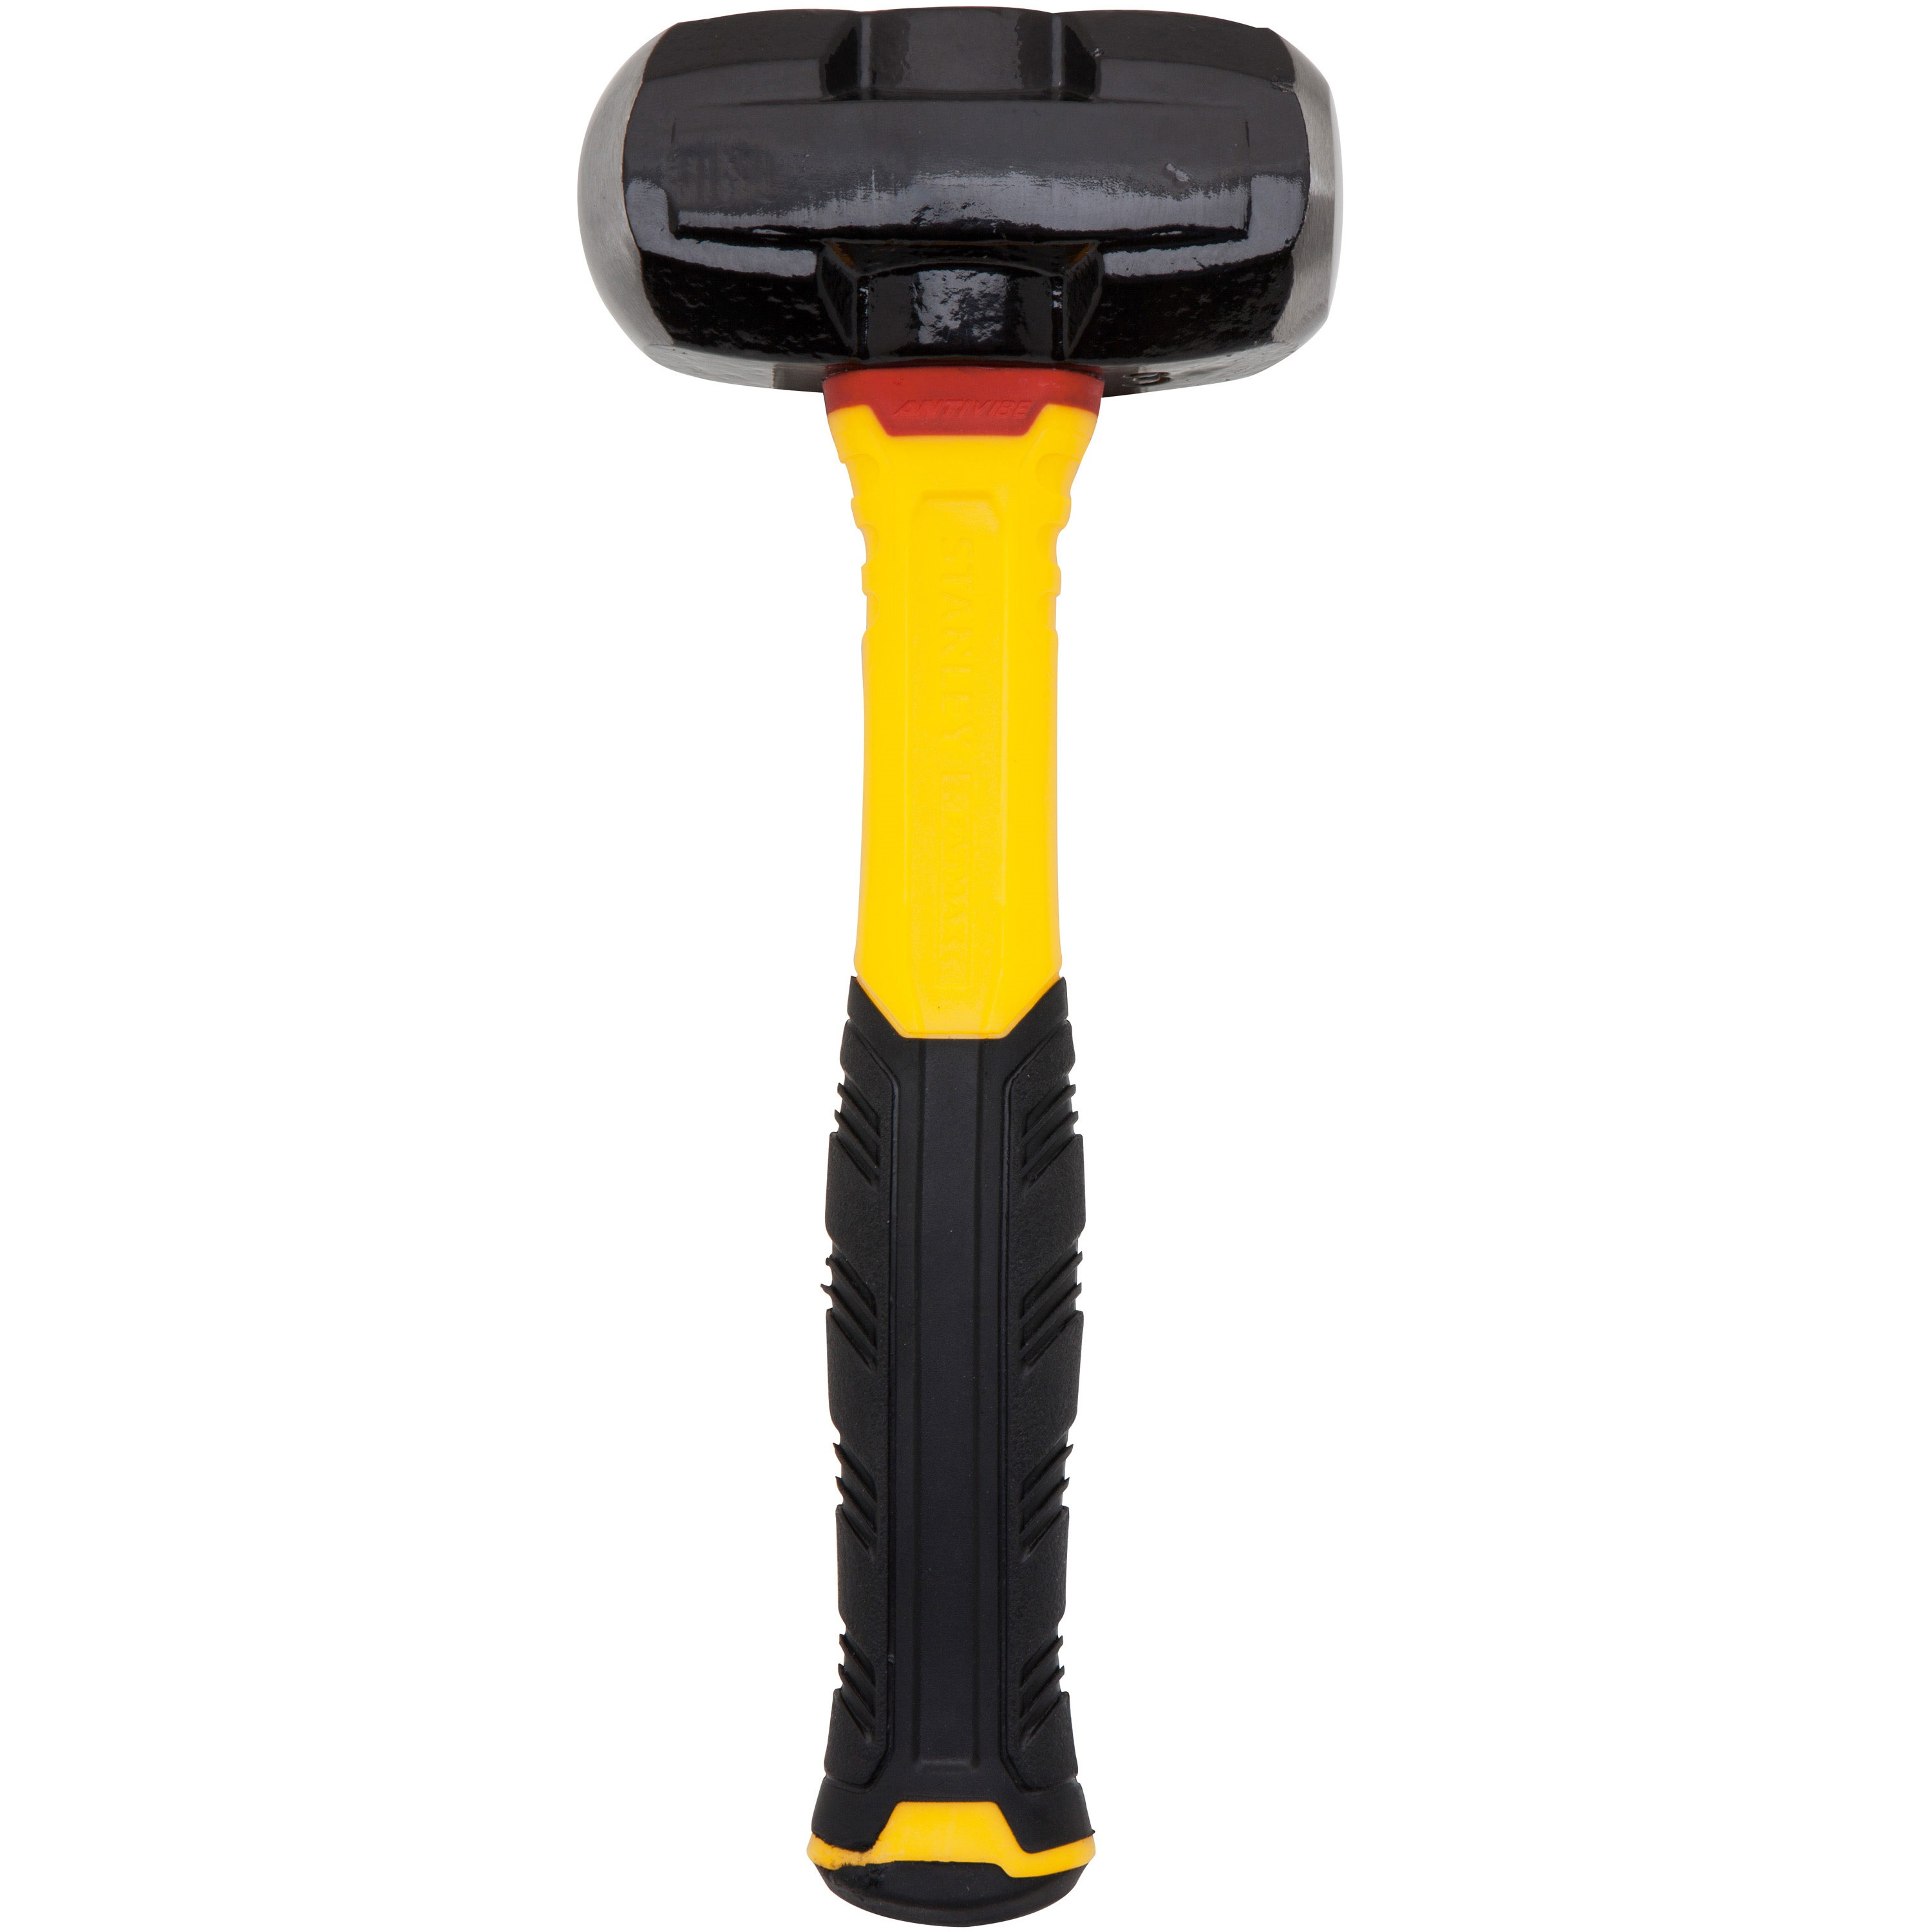 Stanley Tools - 3 lb AntiVibe Drilling Sledge Hammer - FMHT56006